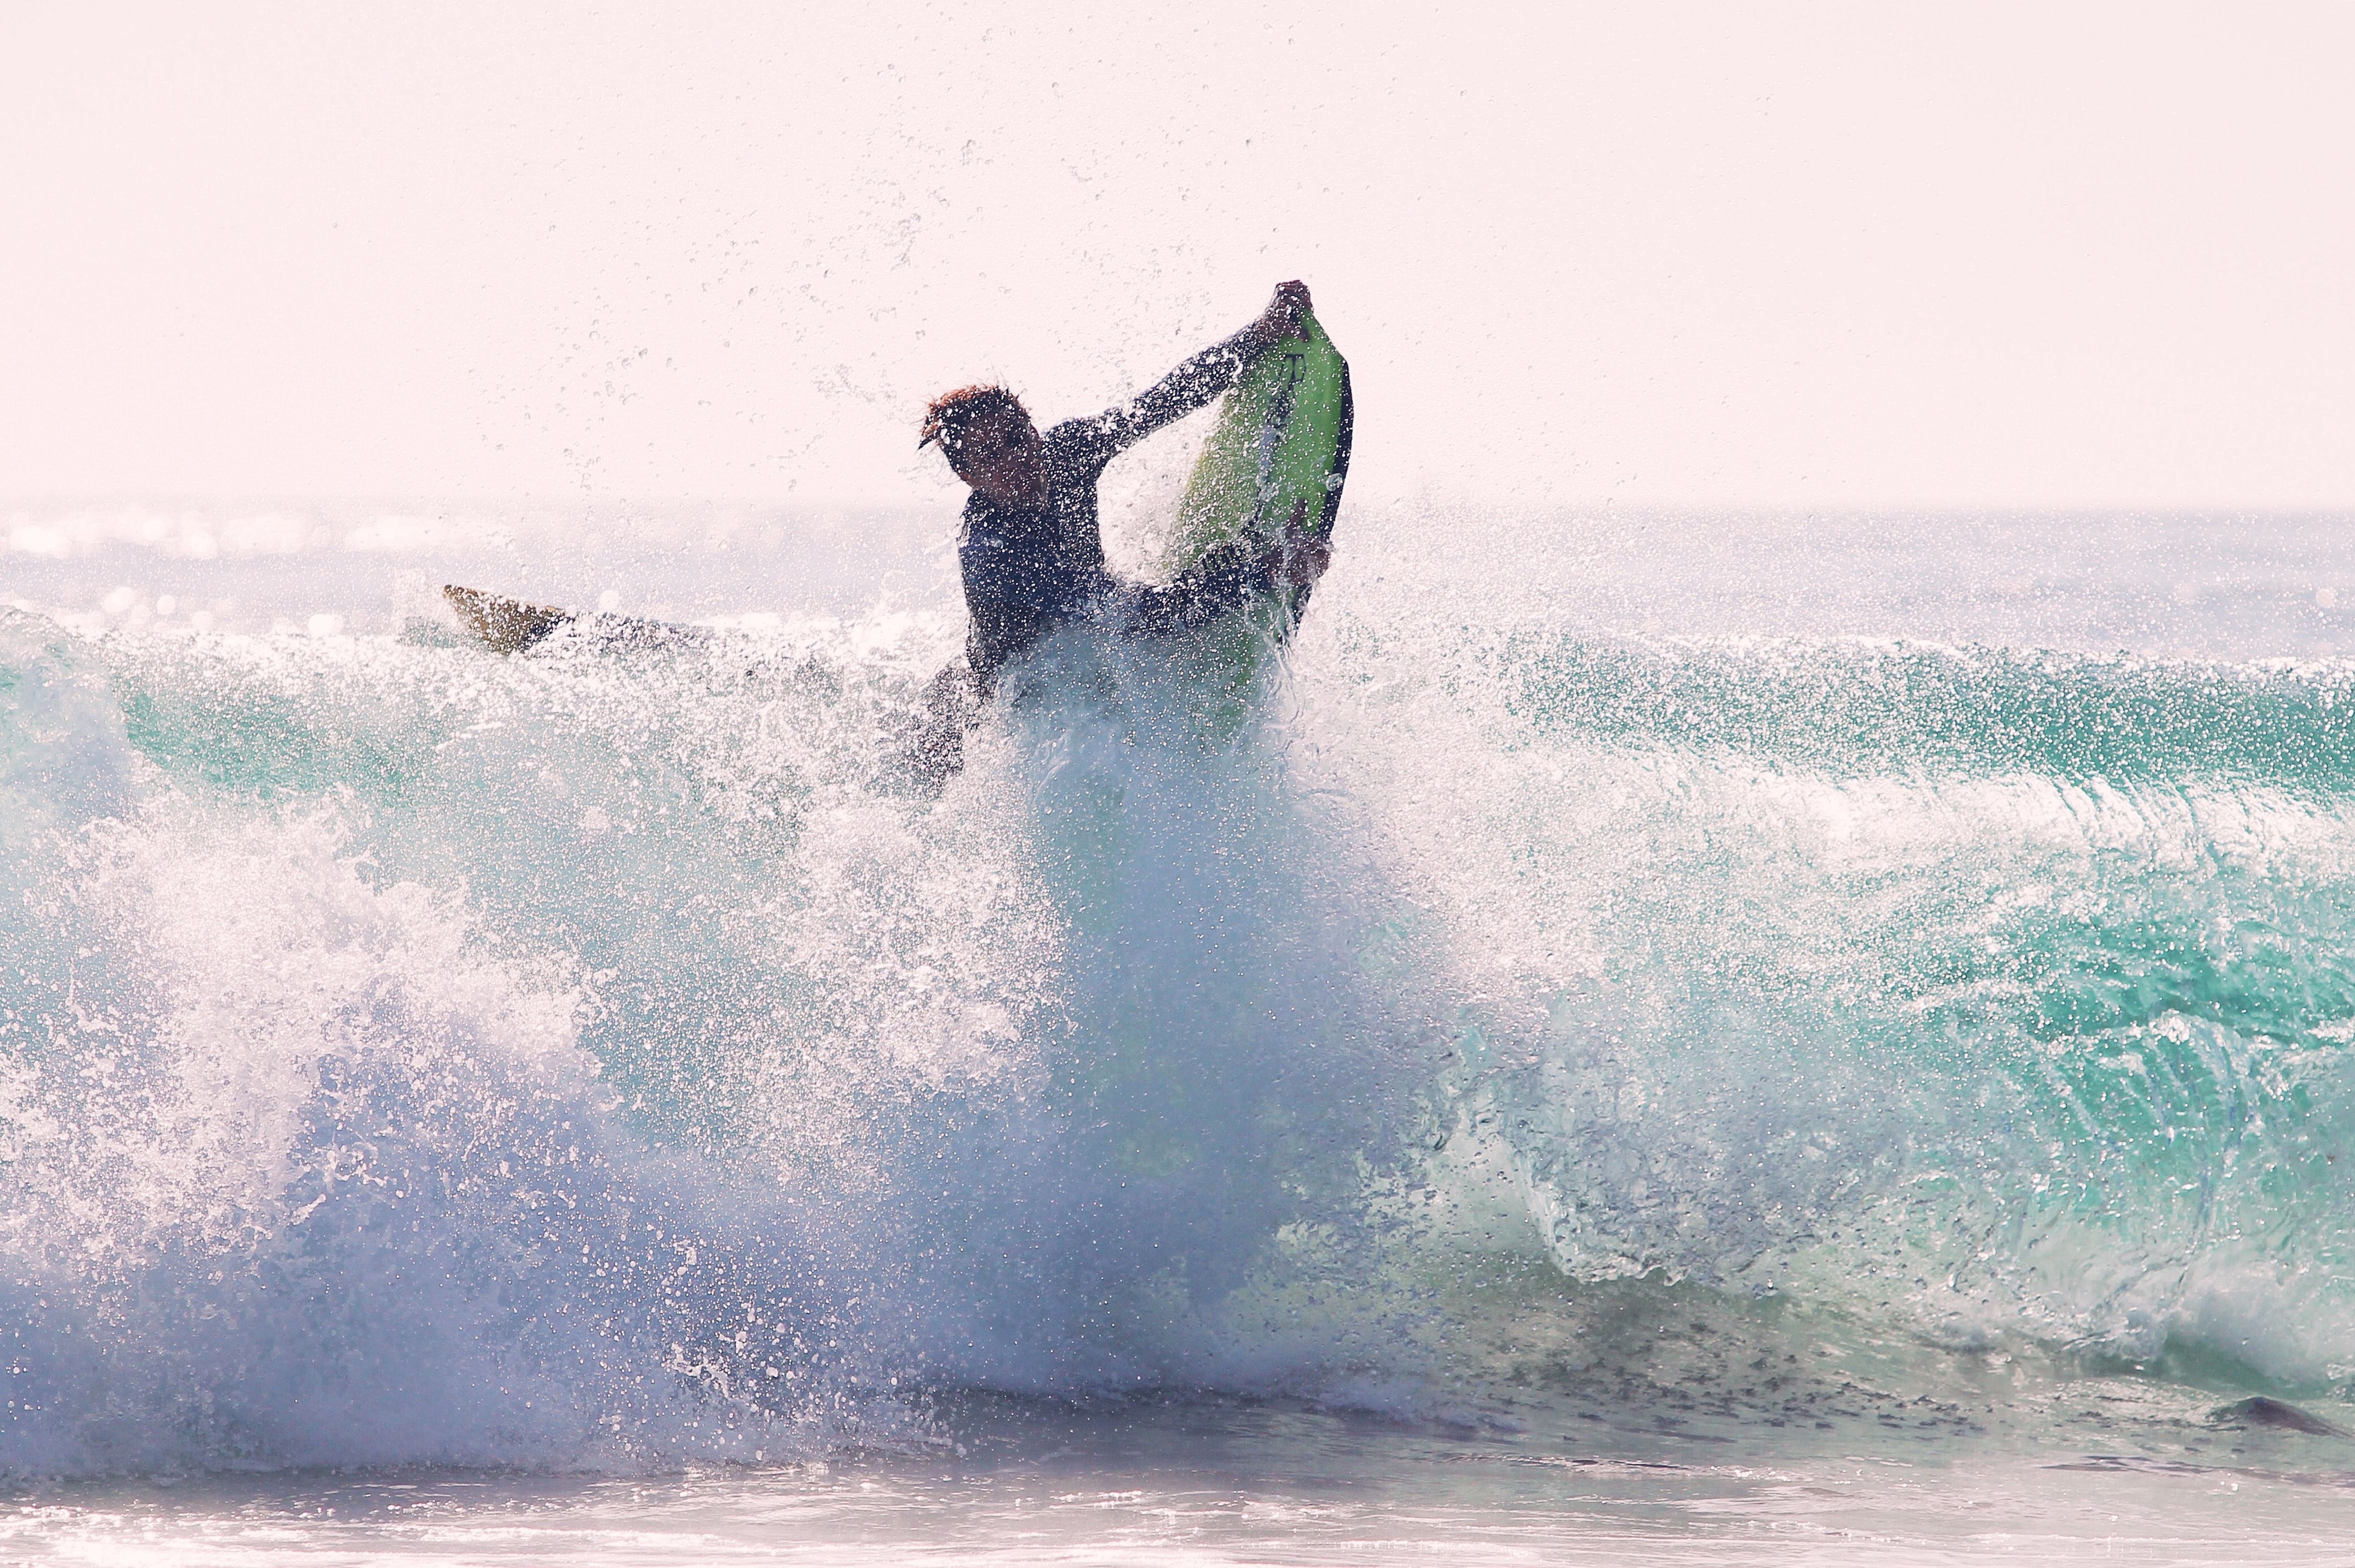 man riding bodyboard